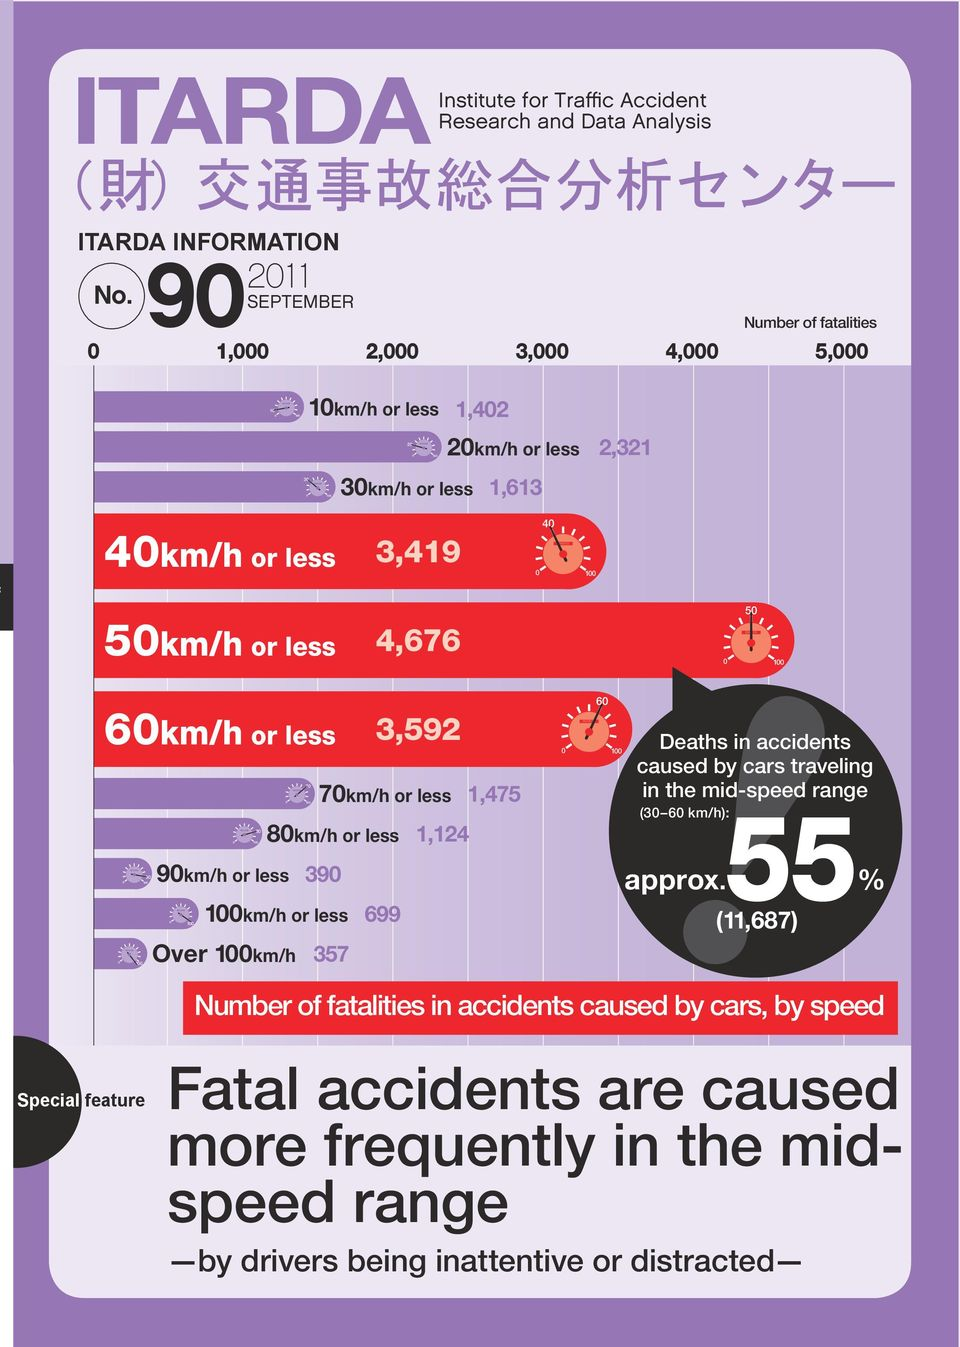 1 9km/h or less 1 1 7km/h or less 8km/h or less 1km/h or less Over 1km/h 8 7 1 39 357 3,592 699 1,124 1,475 972 6 1 Deaths in accidents caused by cars traveling in the